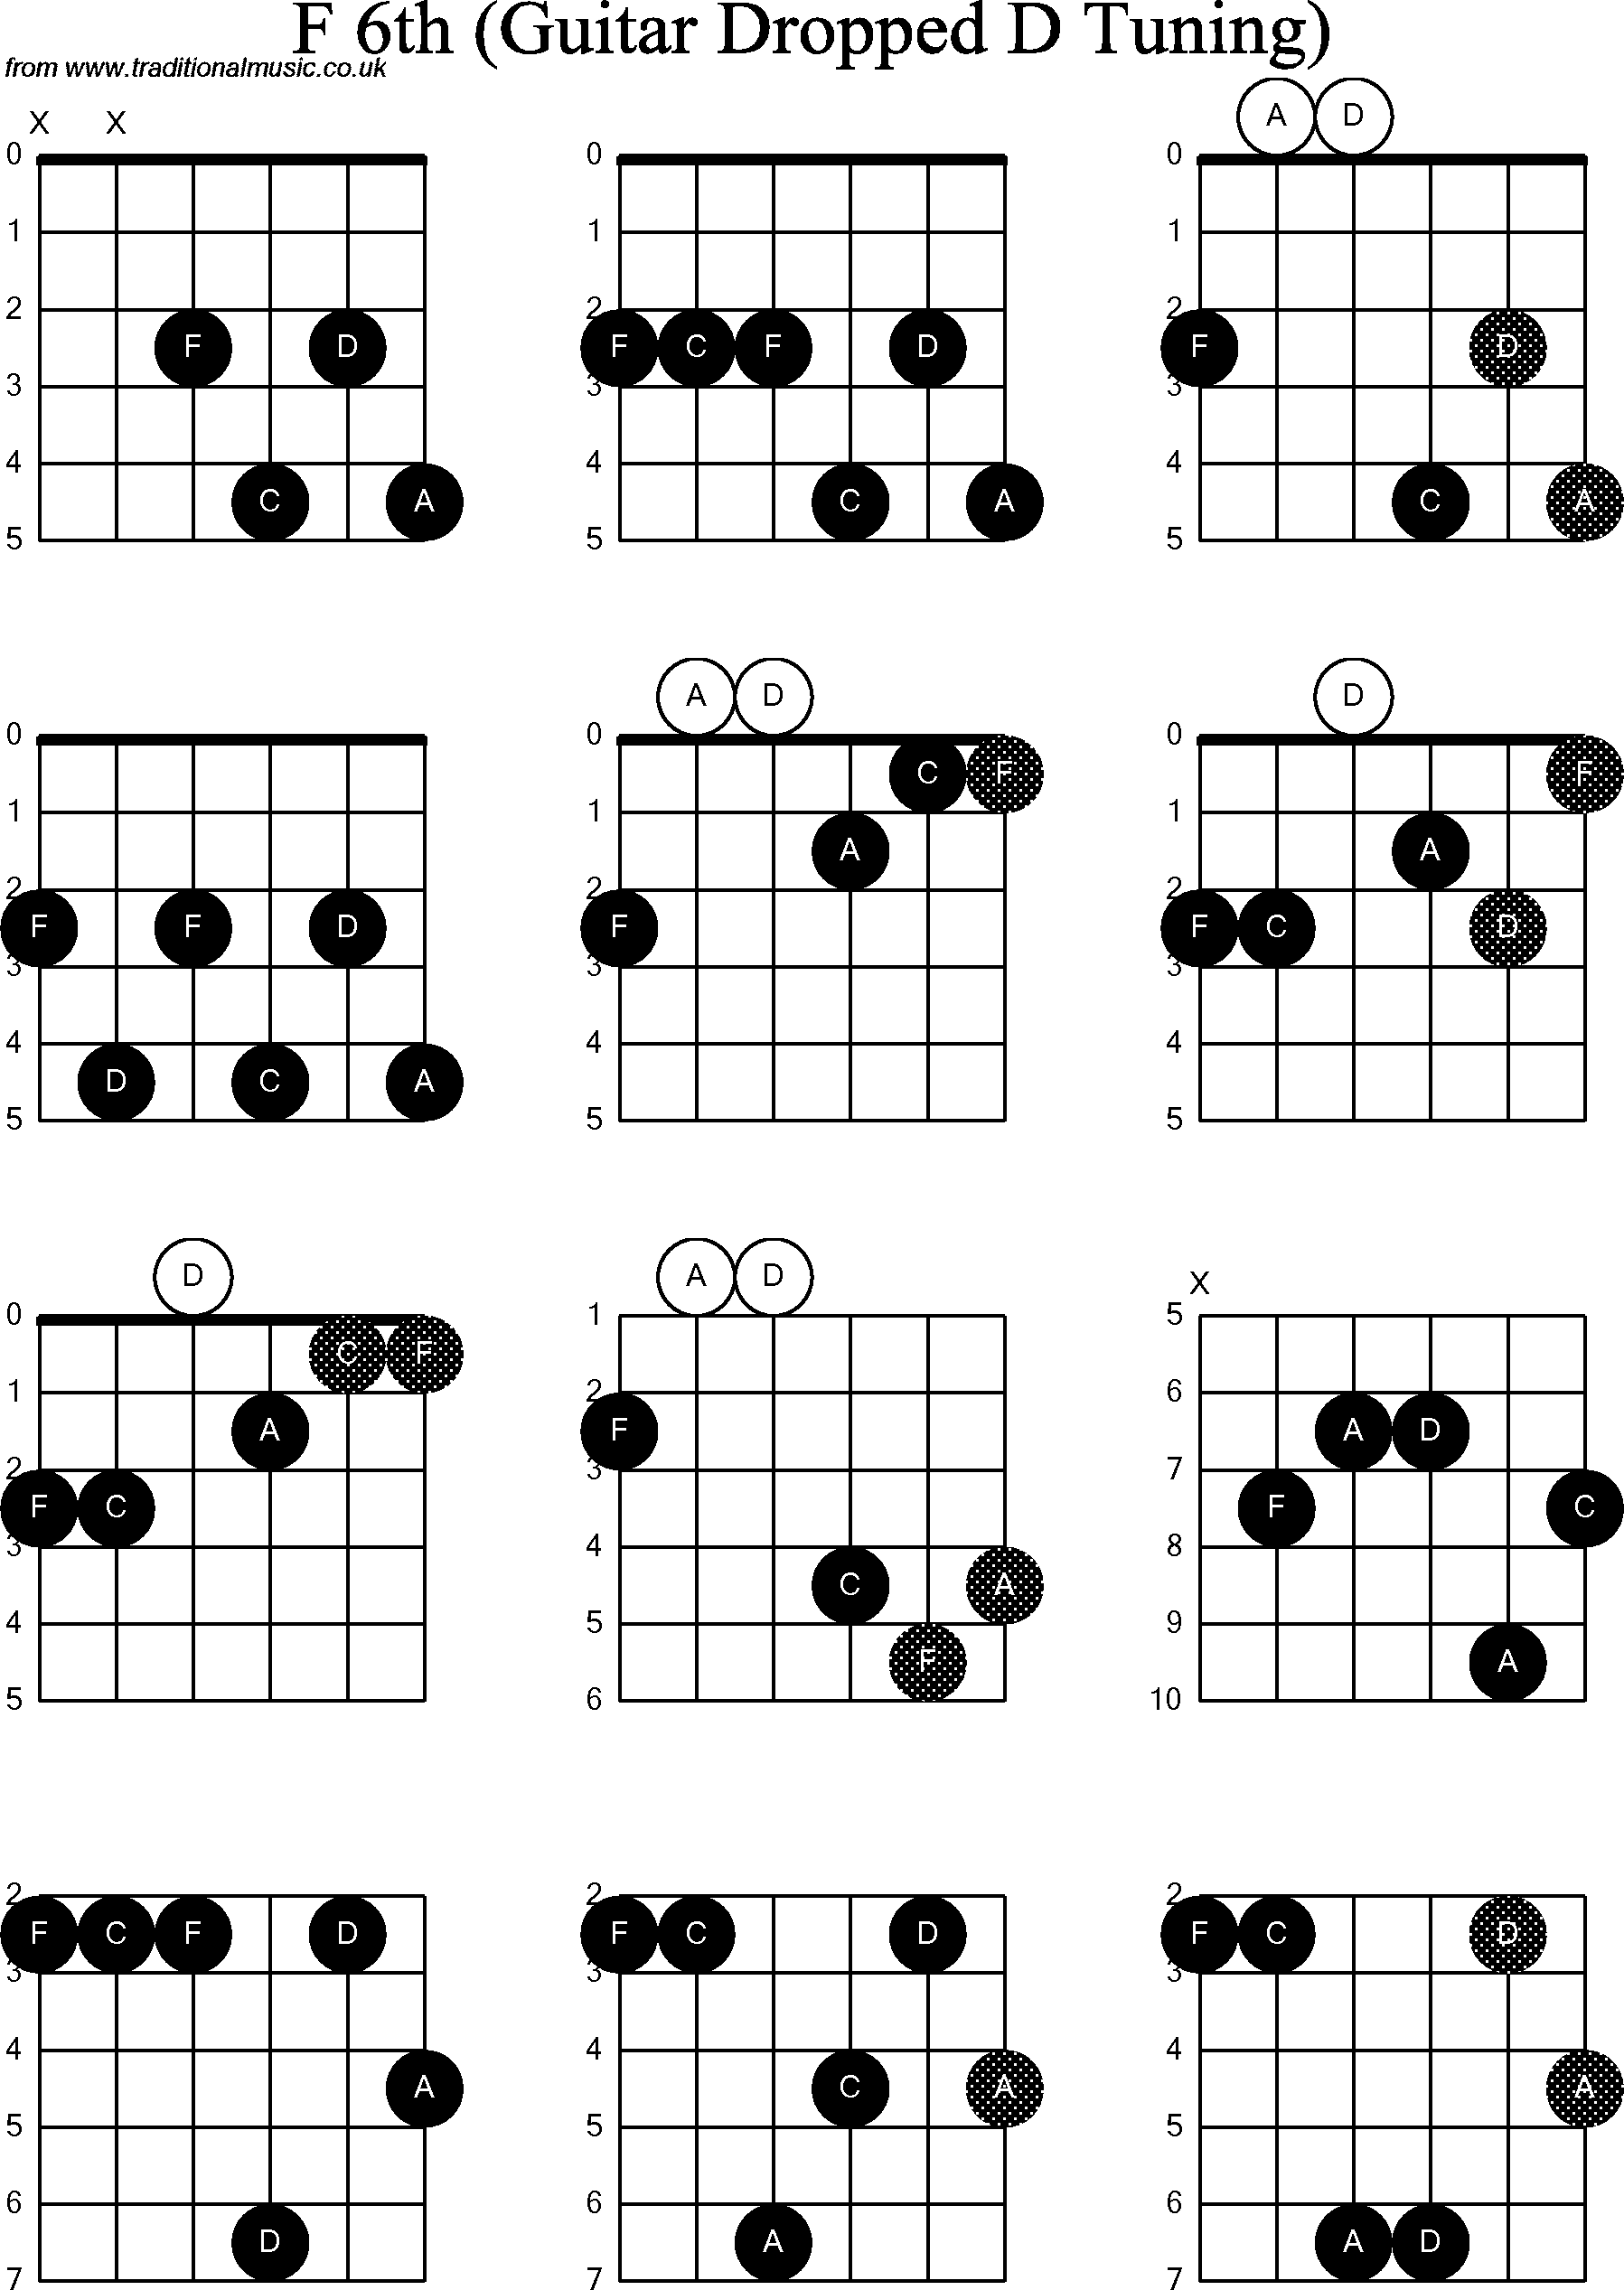 guitar chords to print out - Music Search Engine at Search.com